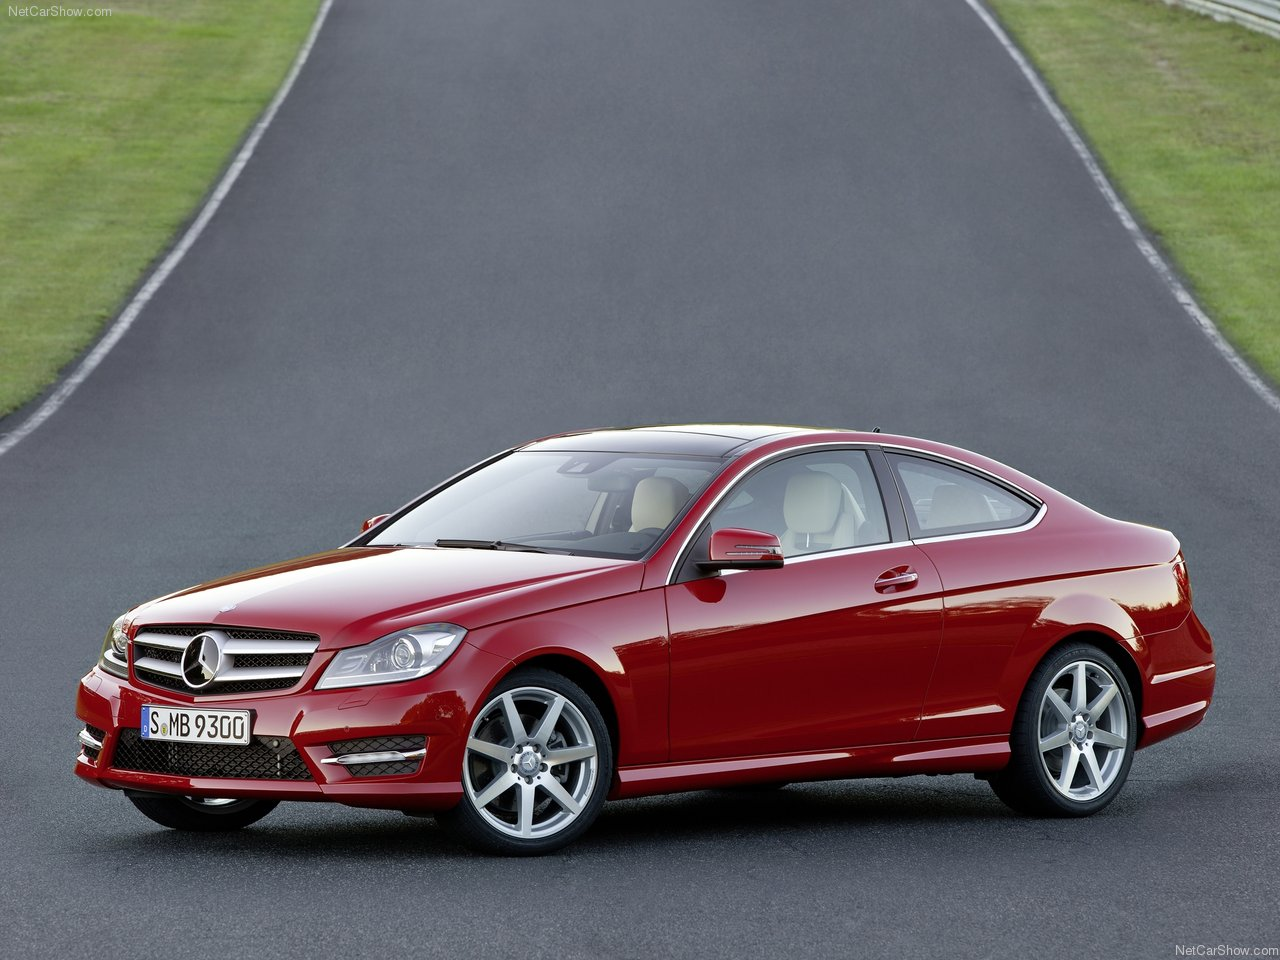 http://3.bp.blogspot.com/-e-9i8A72S8Q/TV_mdQdwCzI/AAAAAAACJmI/1ks5v3ZjenA/s1600/Mercedes-Benz-C-Class_Coupe_2012_1280x960_wallpaper_08.jpg